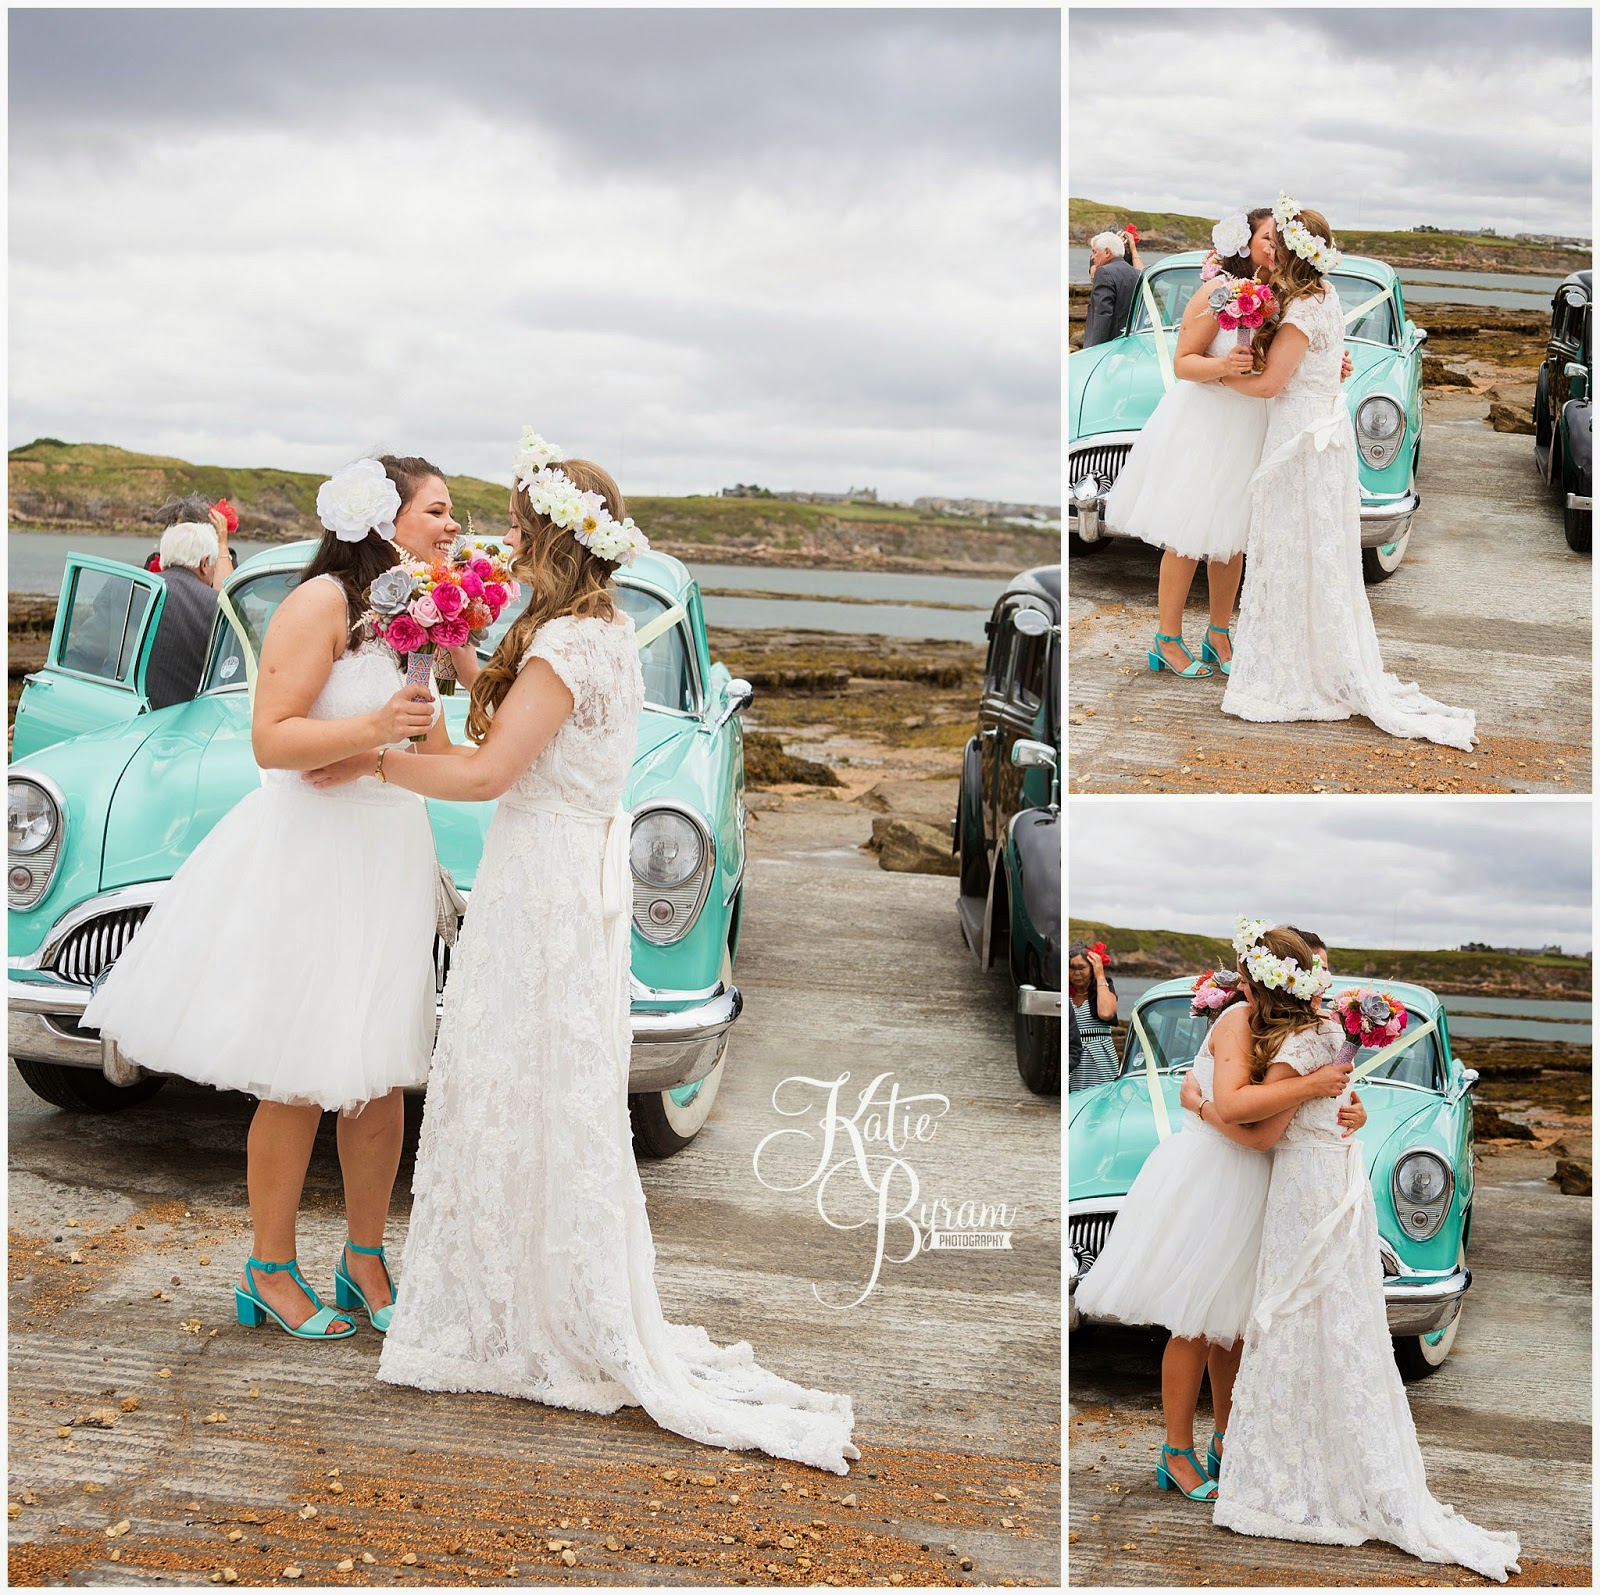 two bride wedding, valley retro, first look, lesbian wedding, share the honest love, love my dress blog, katie byram photography